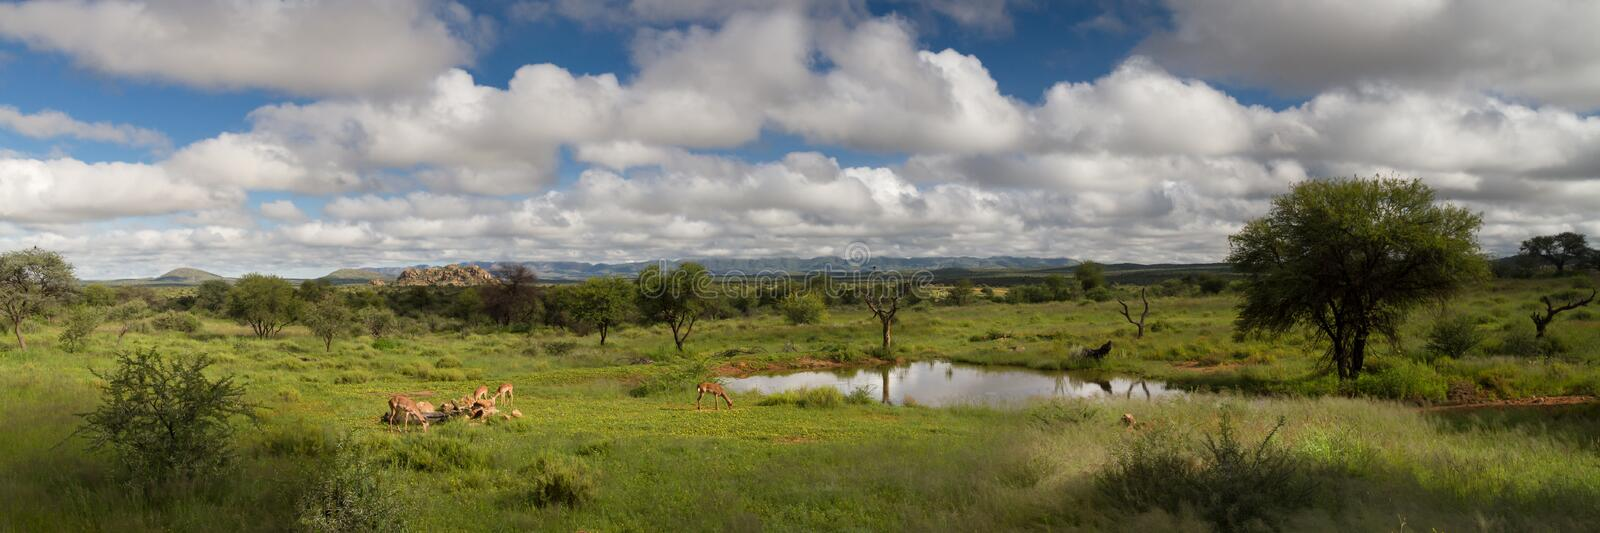 Panorama of a water hole in the namibia savanna. Near Windhoek, Namibia, Africa royalty free stock photo